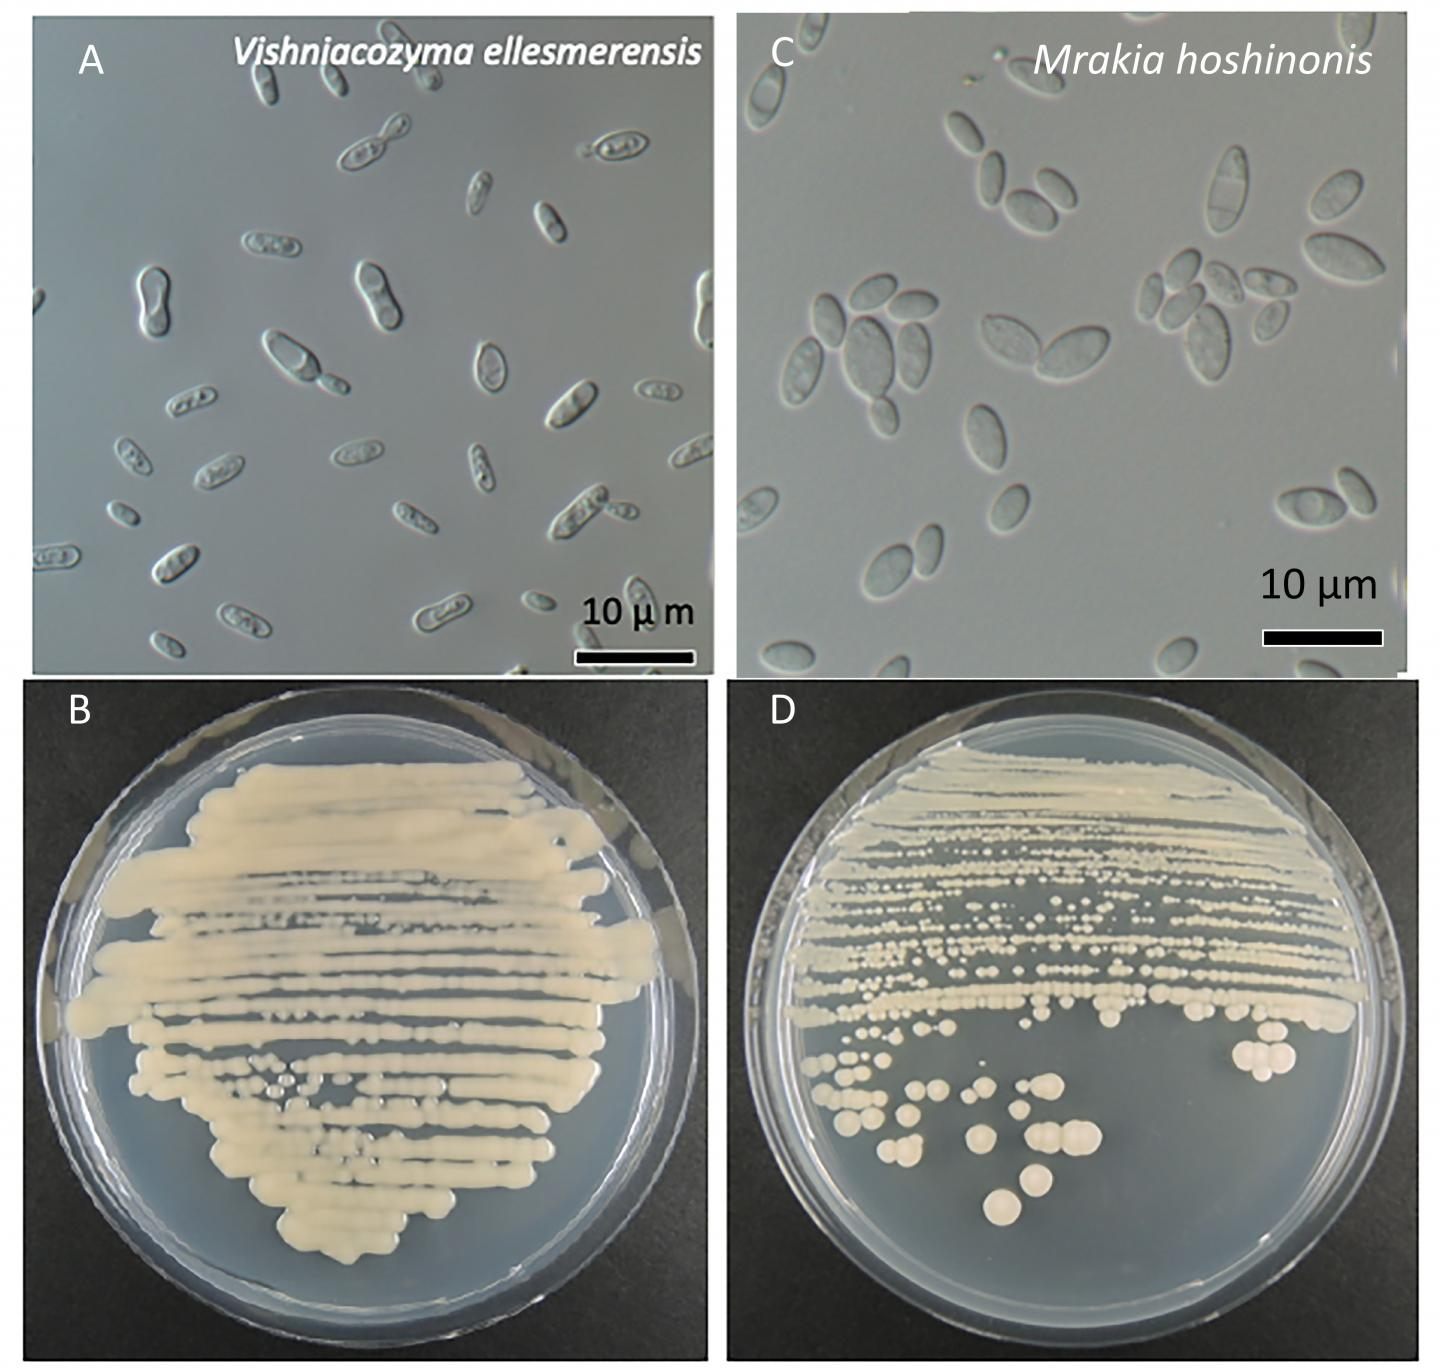 Two New Species of Fungi